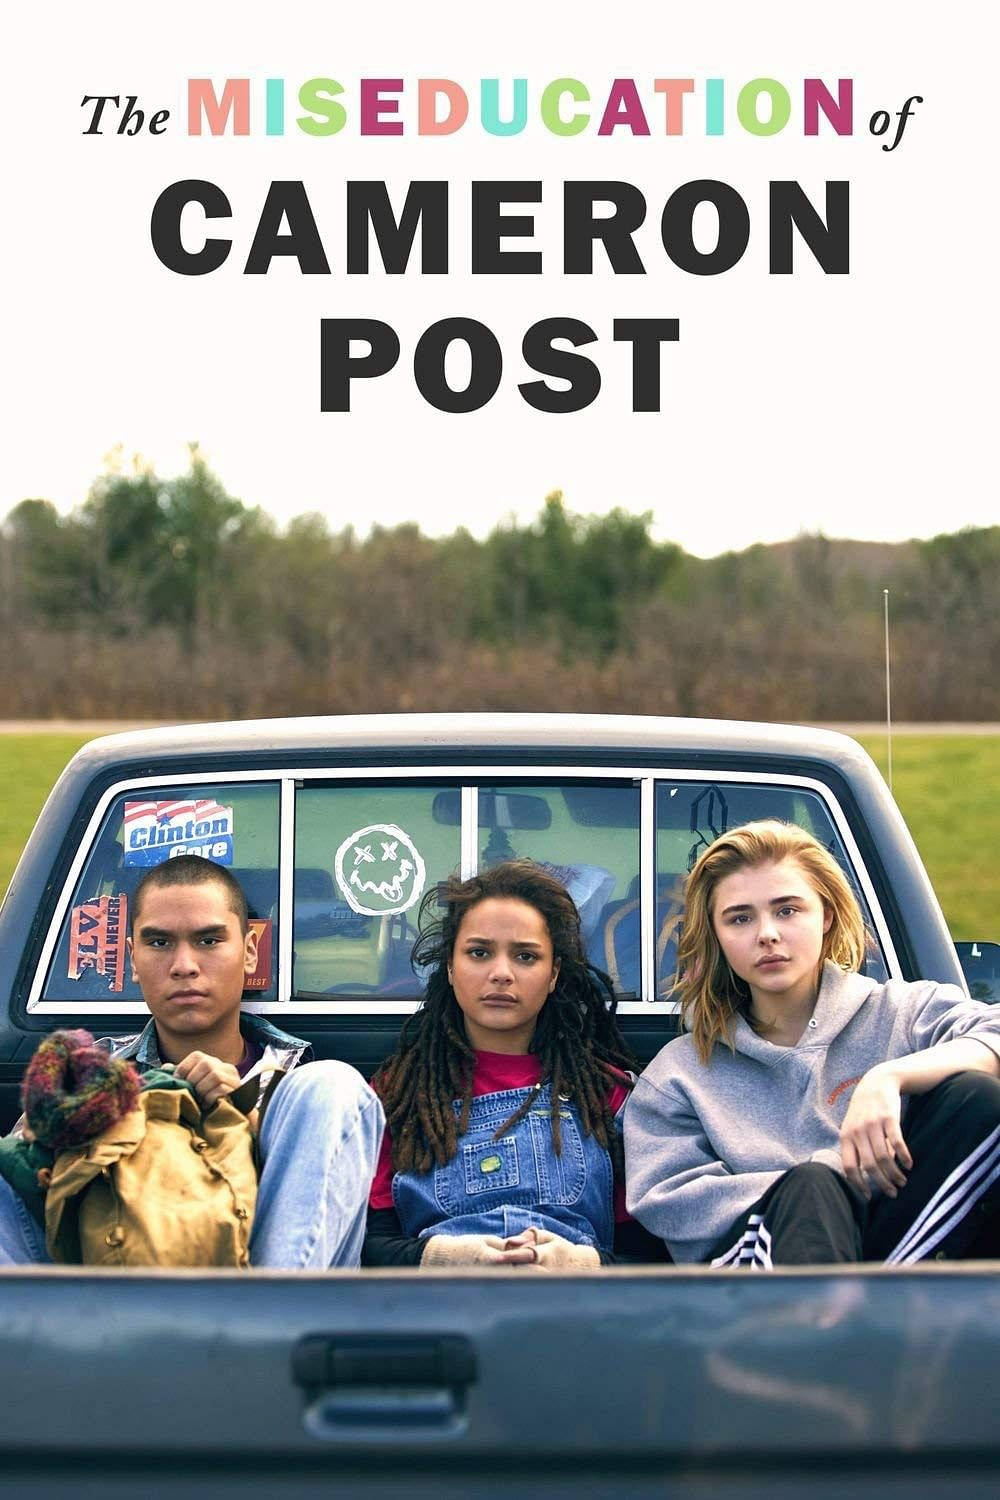 Poster of The Miseducation of Cameron Post which was alos based on the conversion therapy